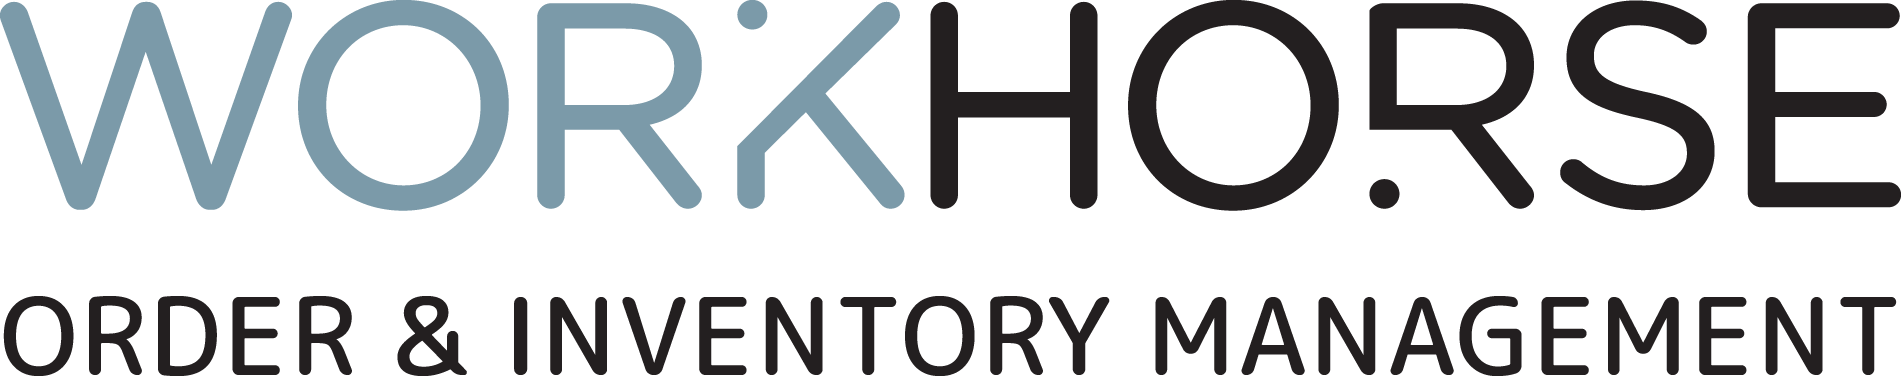 Order & Inventory Management | Workhorse Home | Workhorse